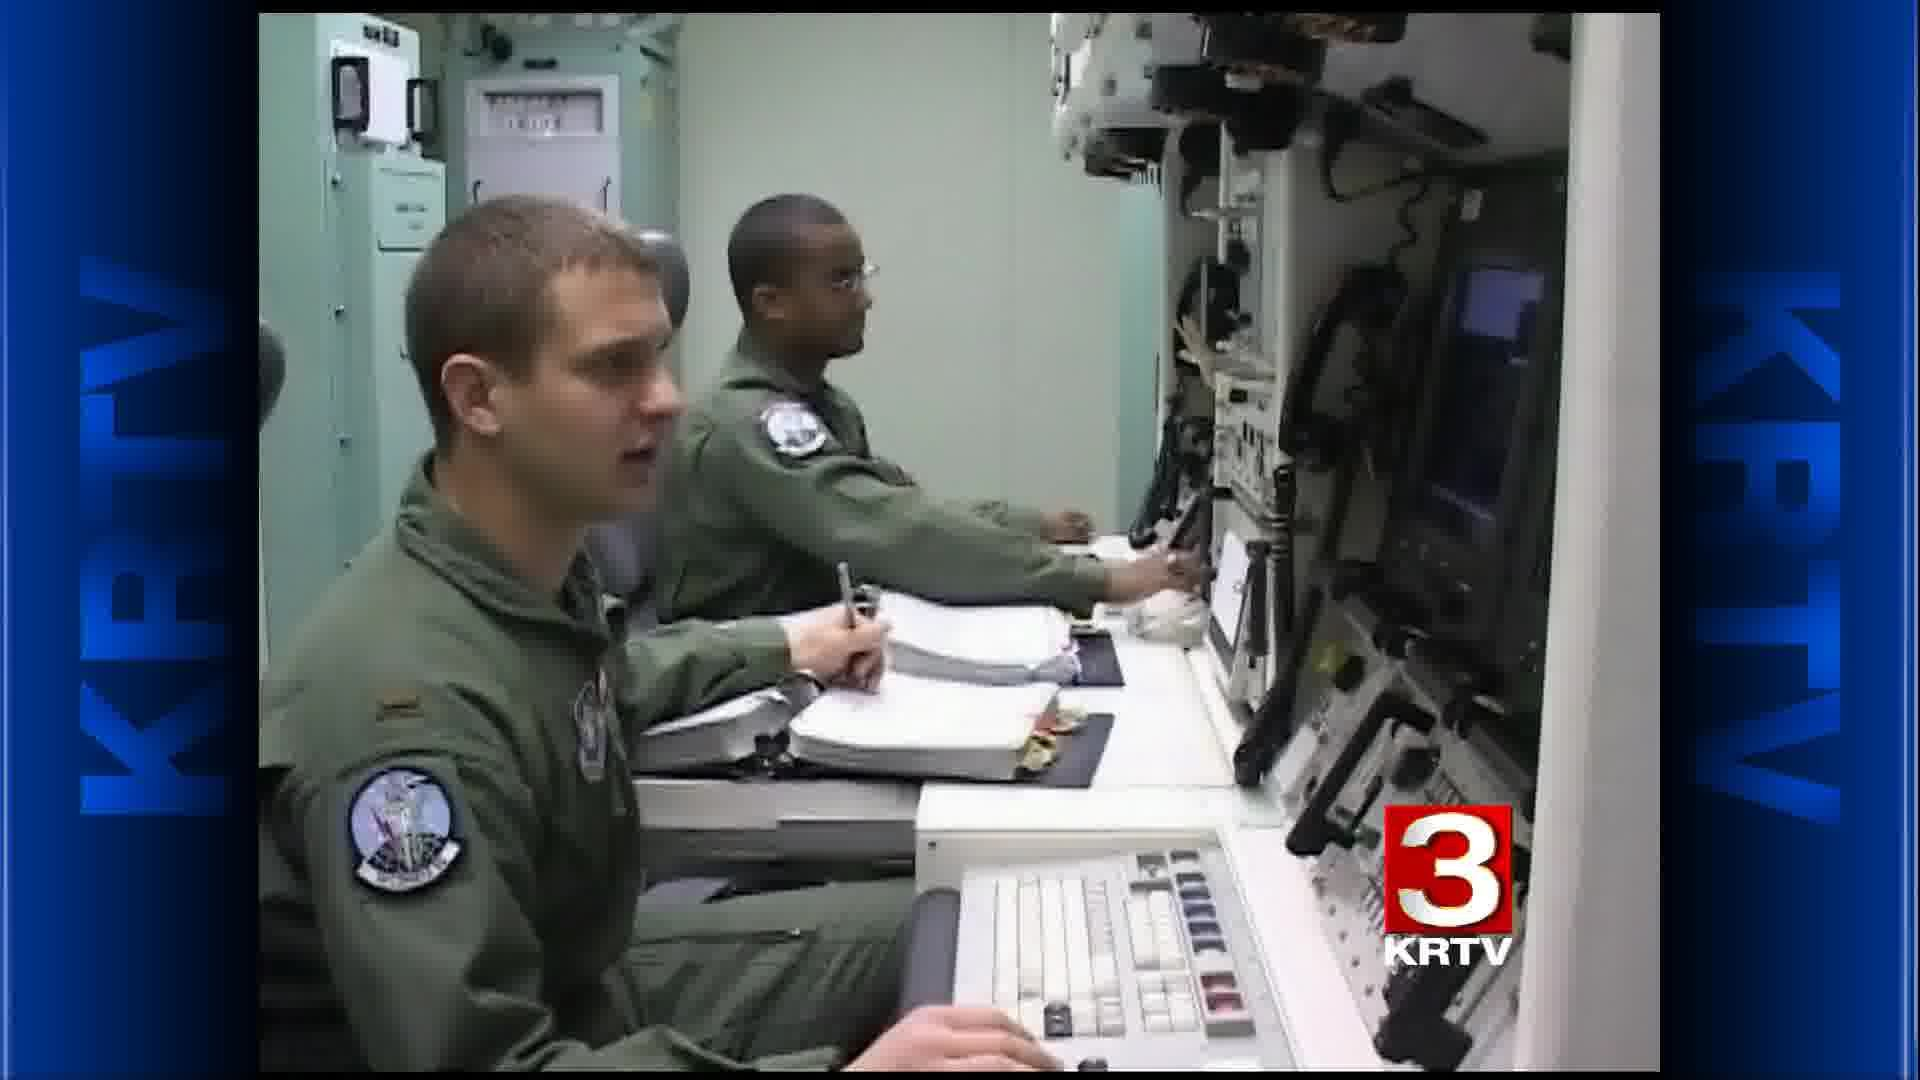 Malmstrom missile officers on duty